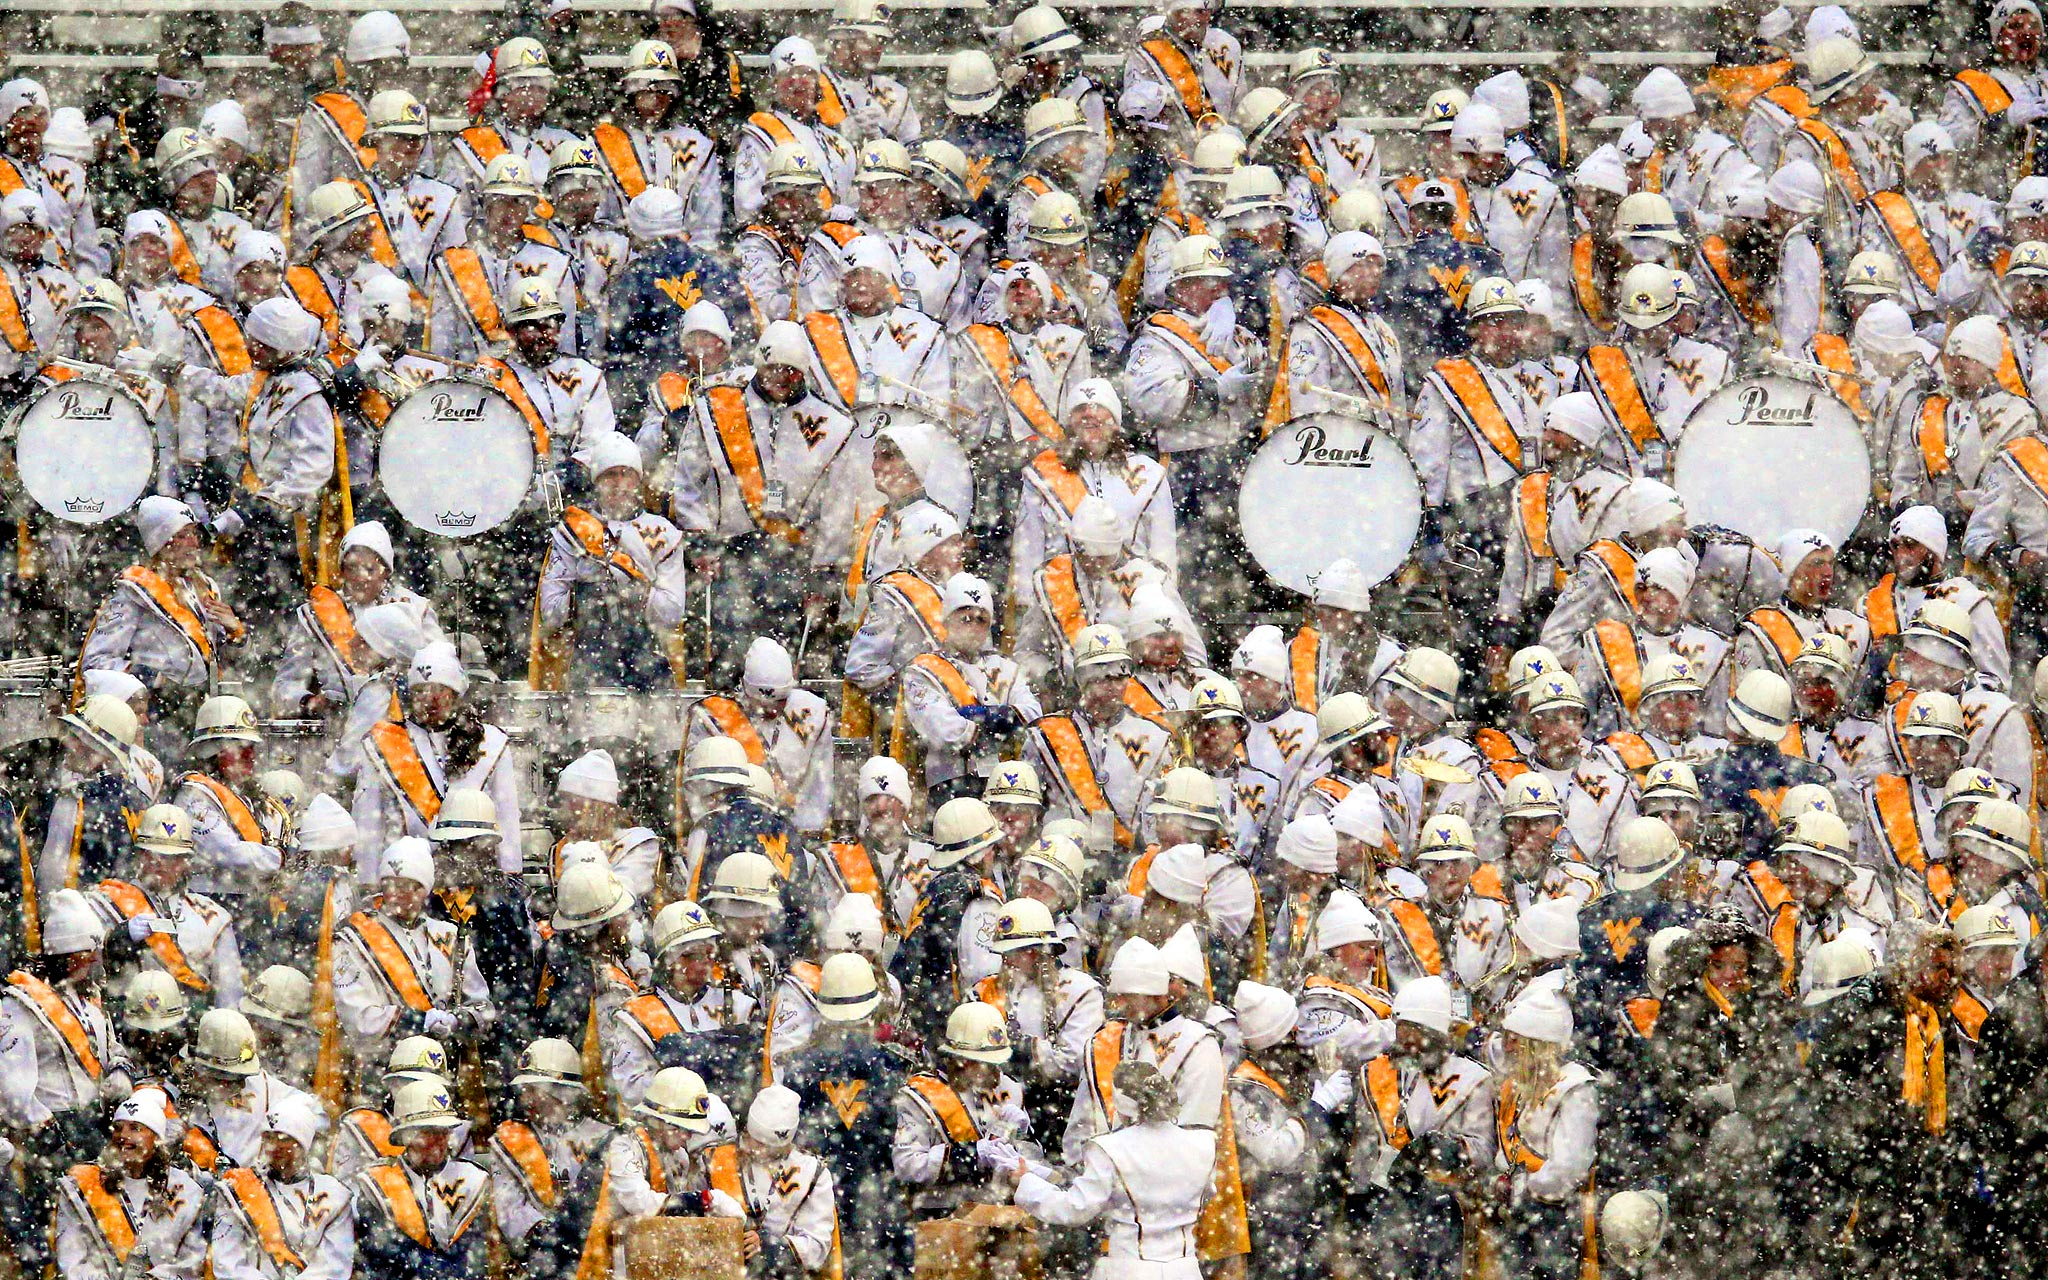 West Virginia Mountaineers band